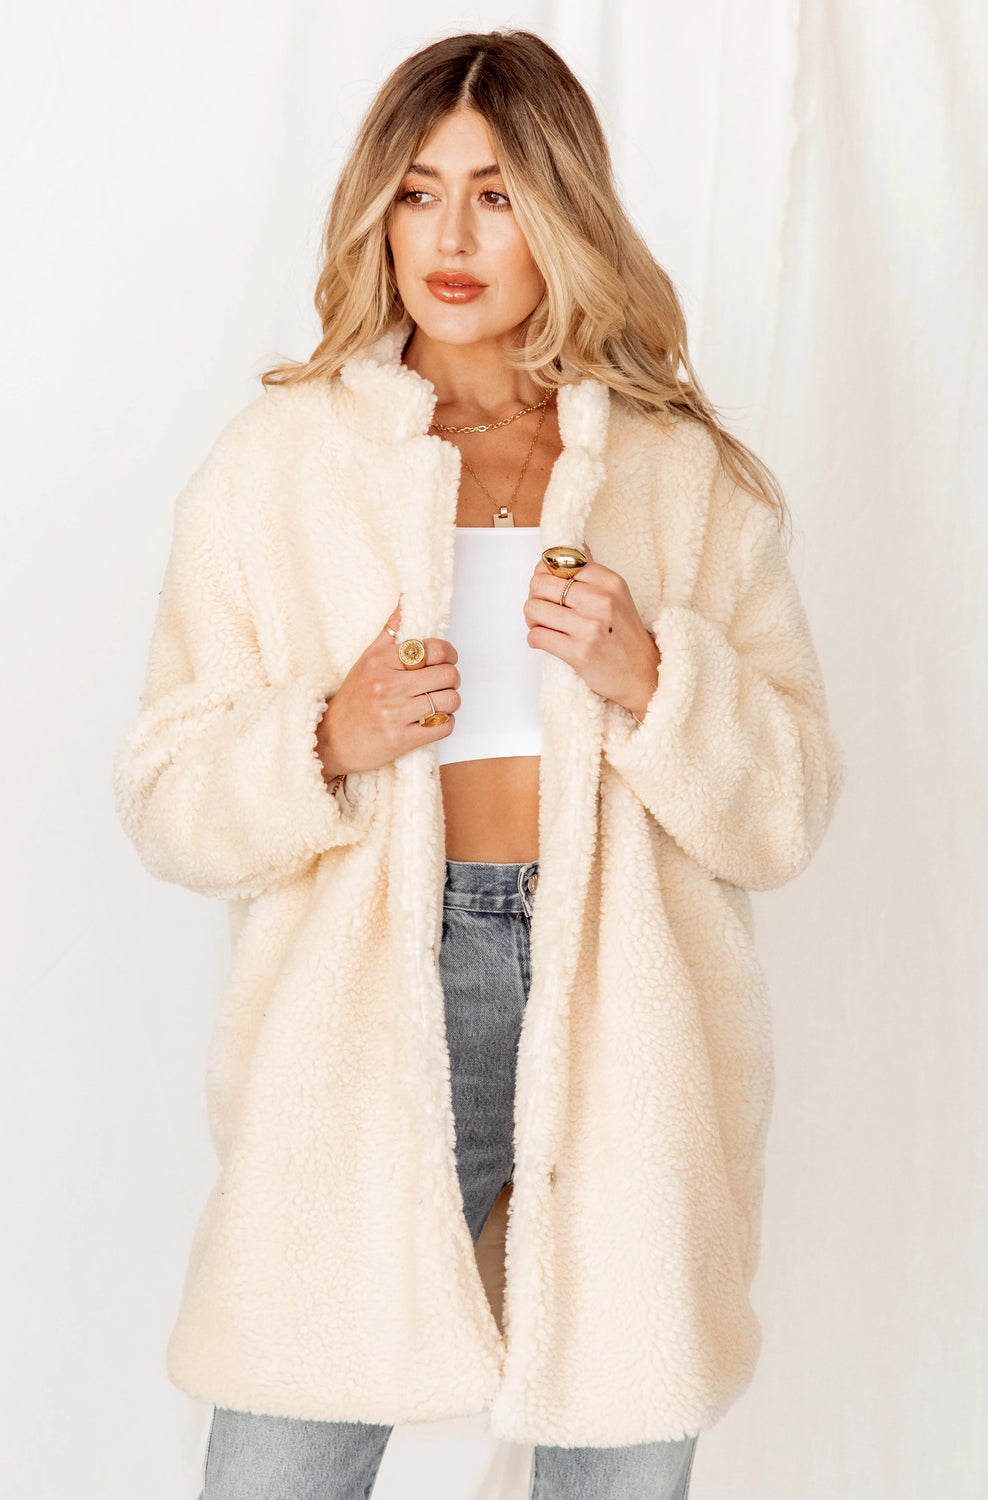 Snowed In Ivory Sherpa Coat